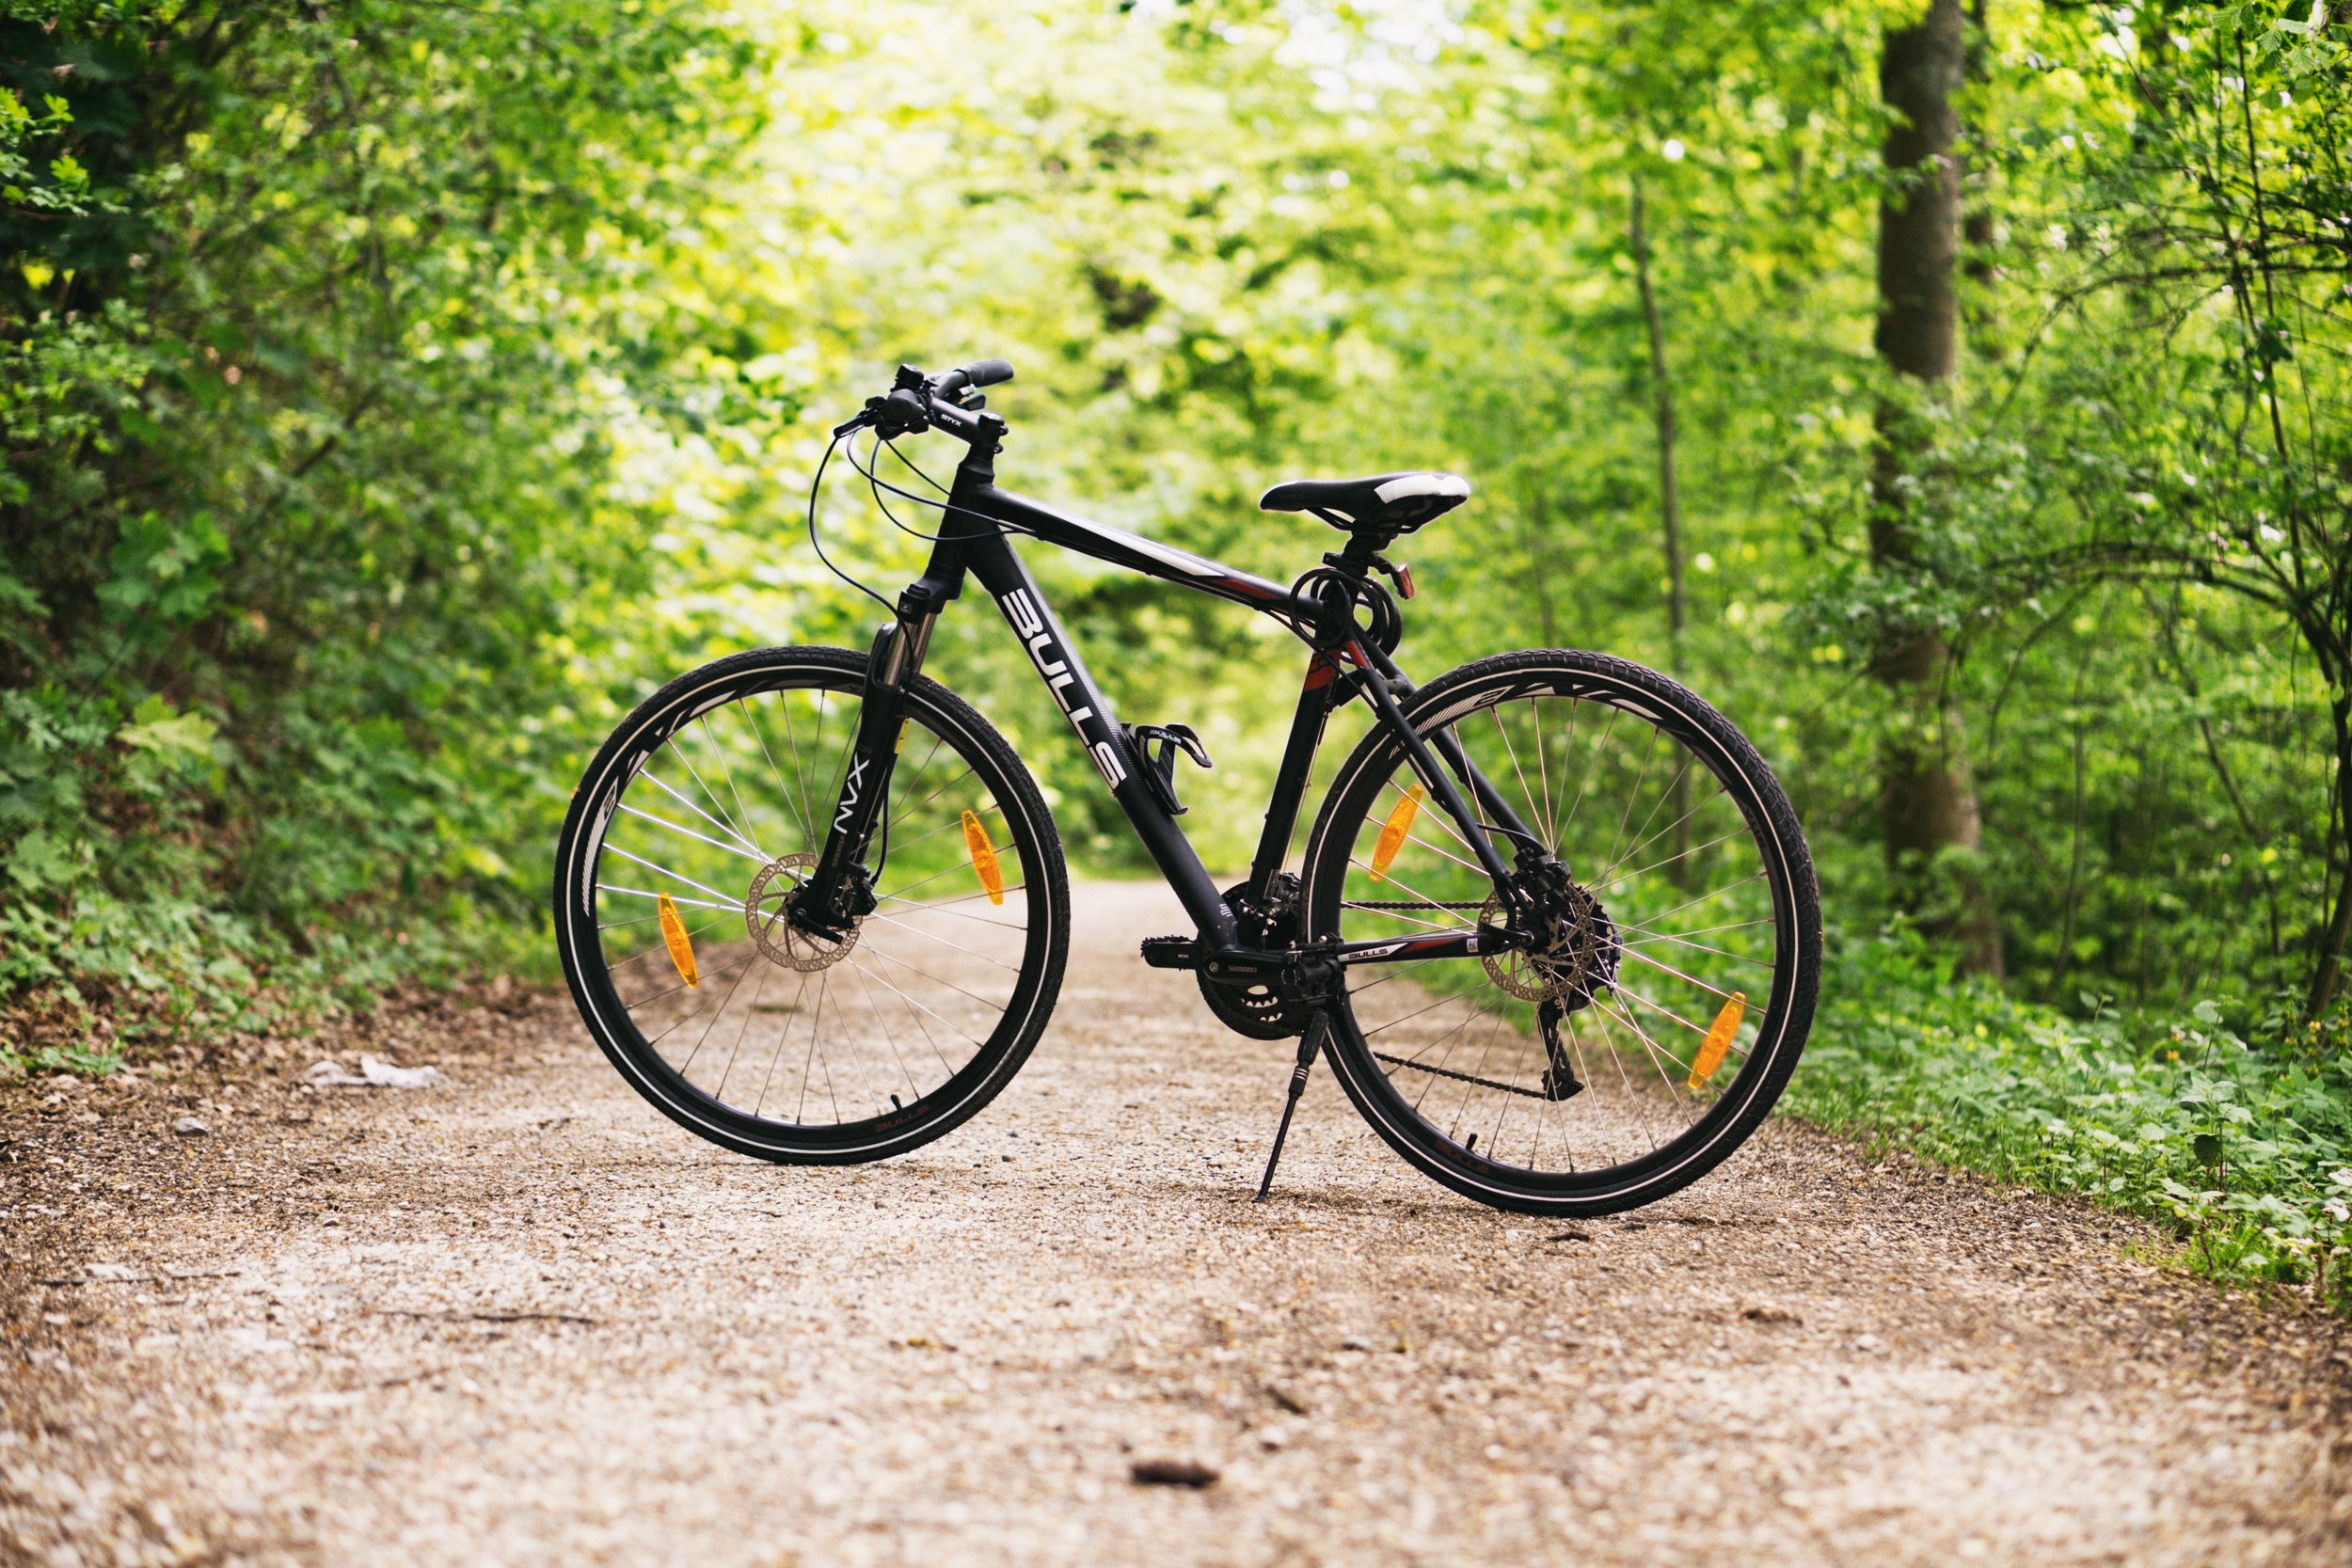 bicycle-bike-daylight-100582.jpg